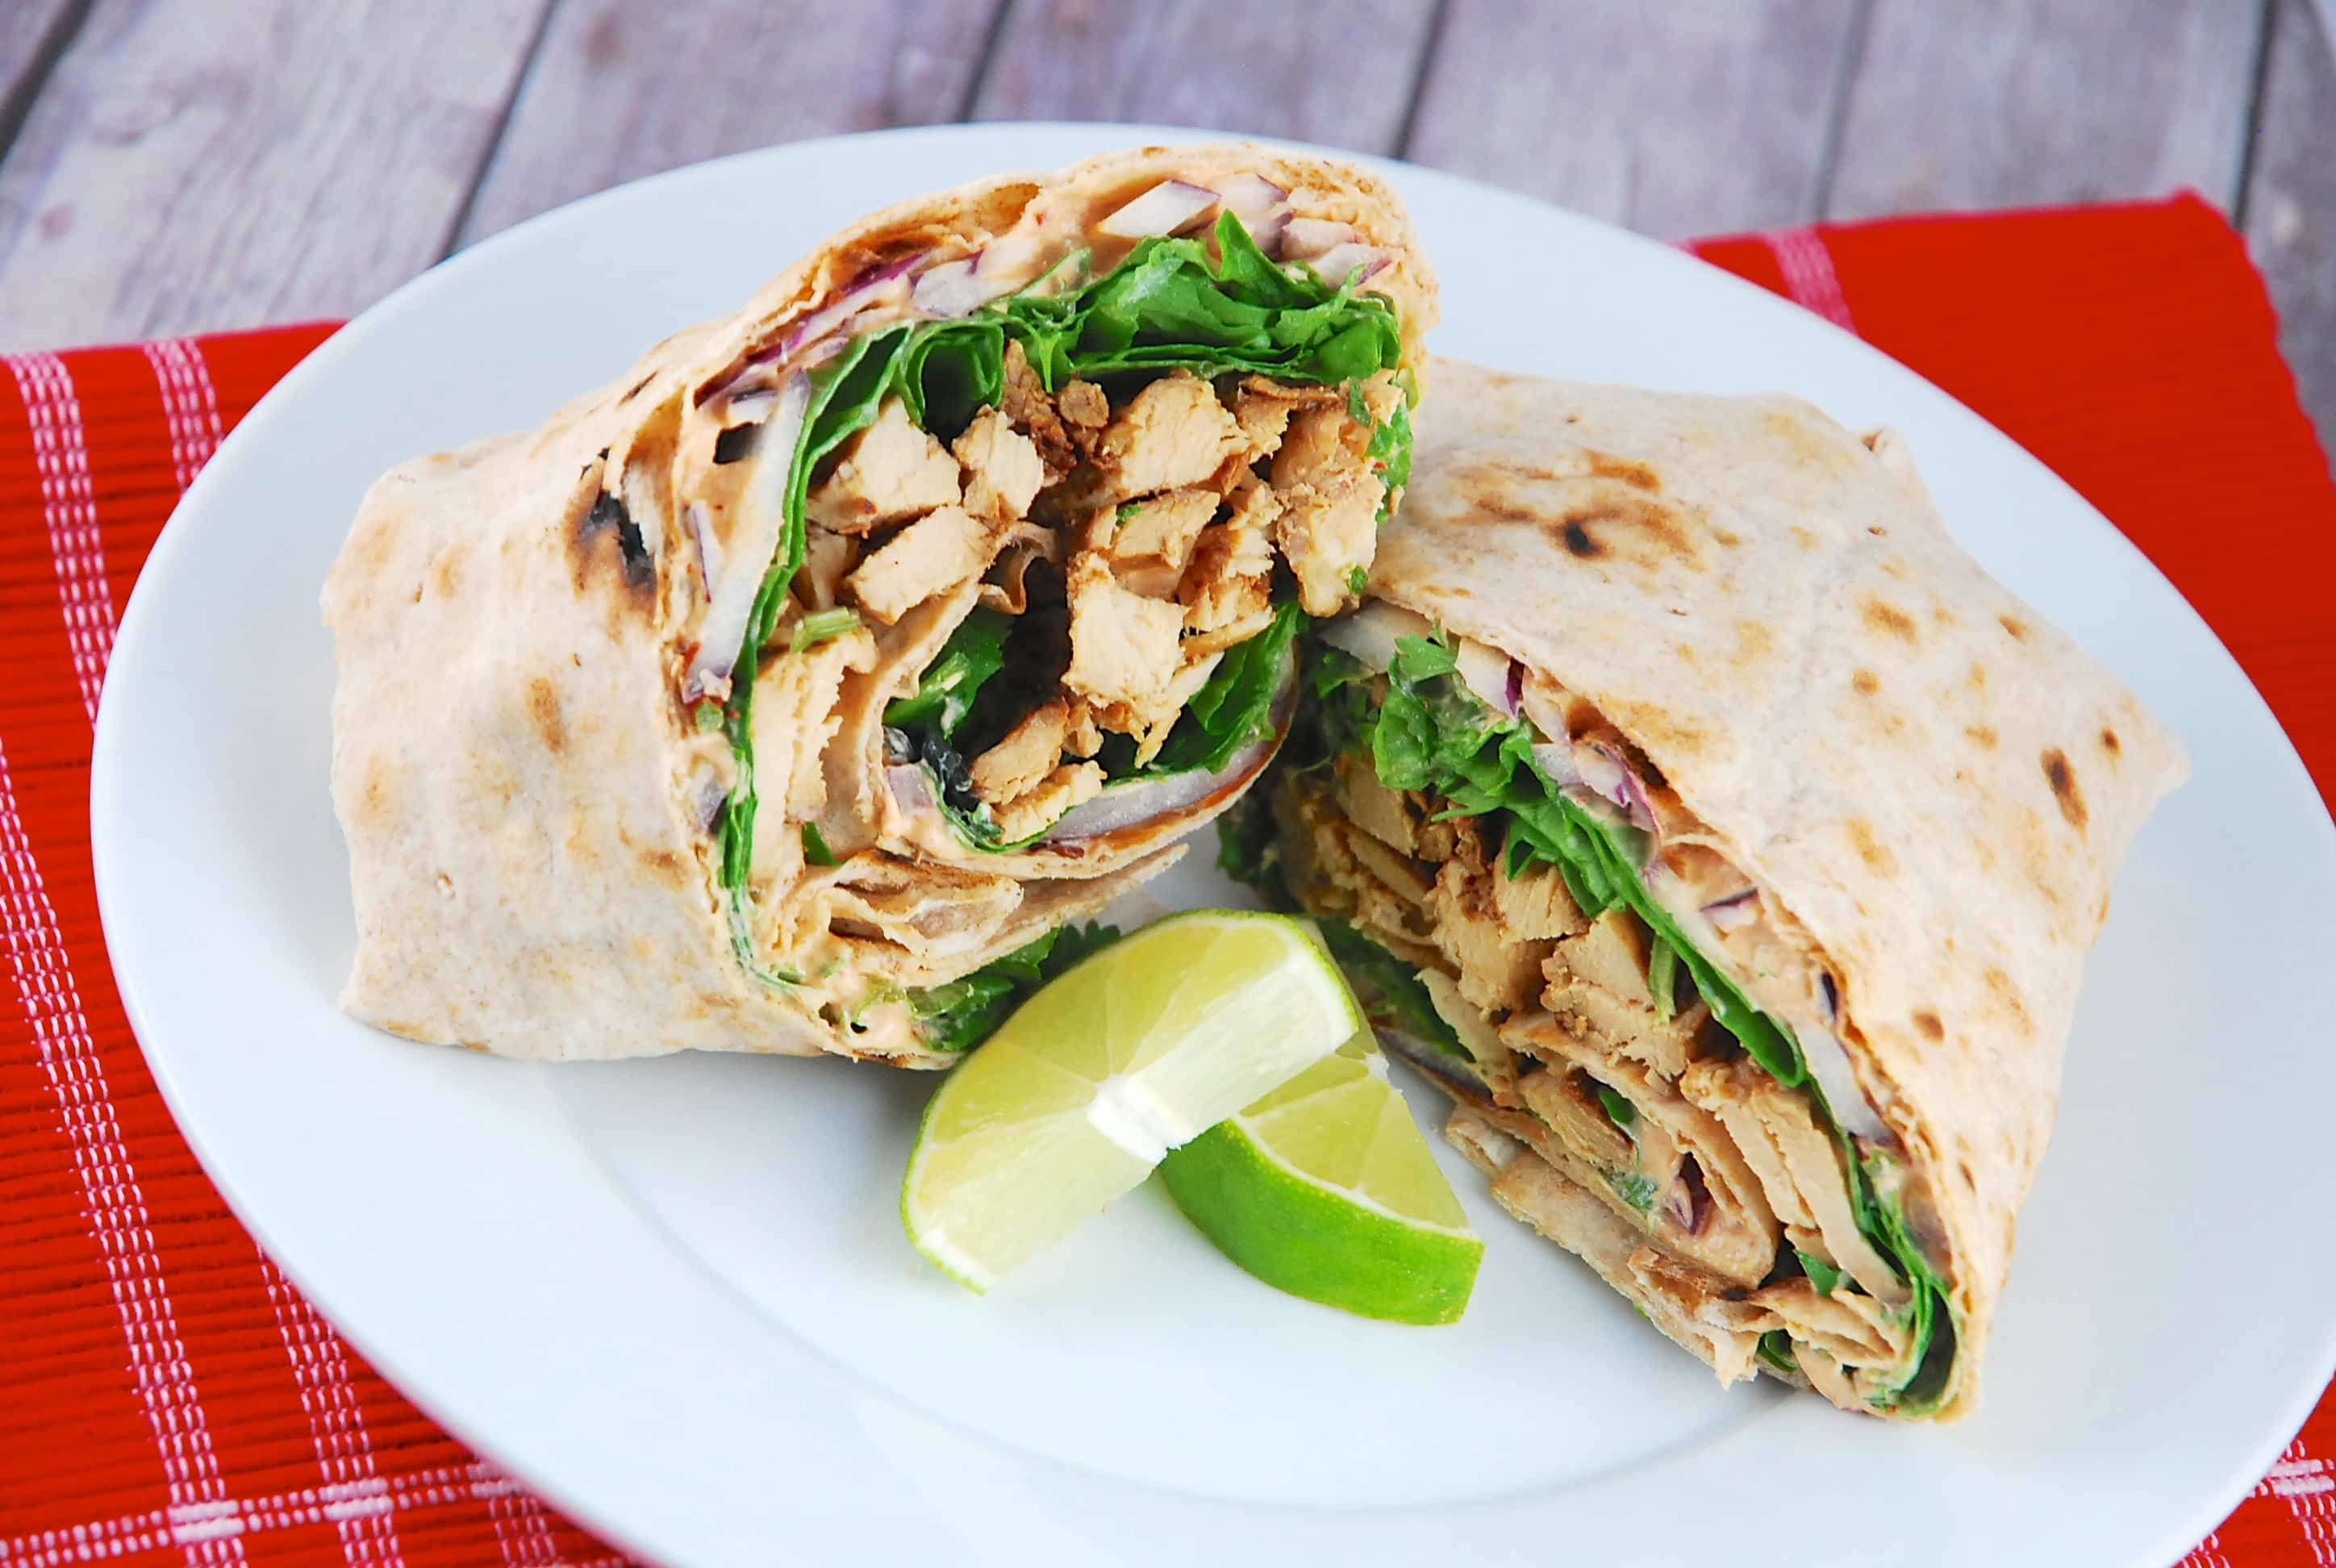 Chipotle Chicken Wrap Recipe - 8 Points + - LaaLoosh